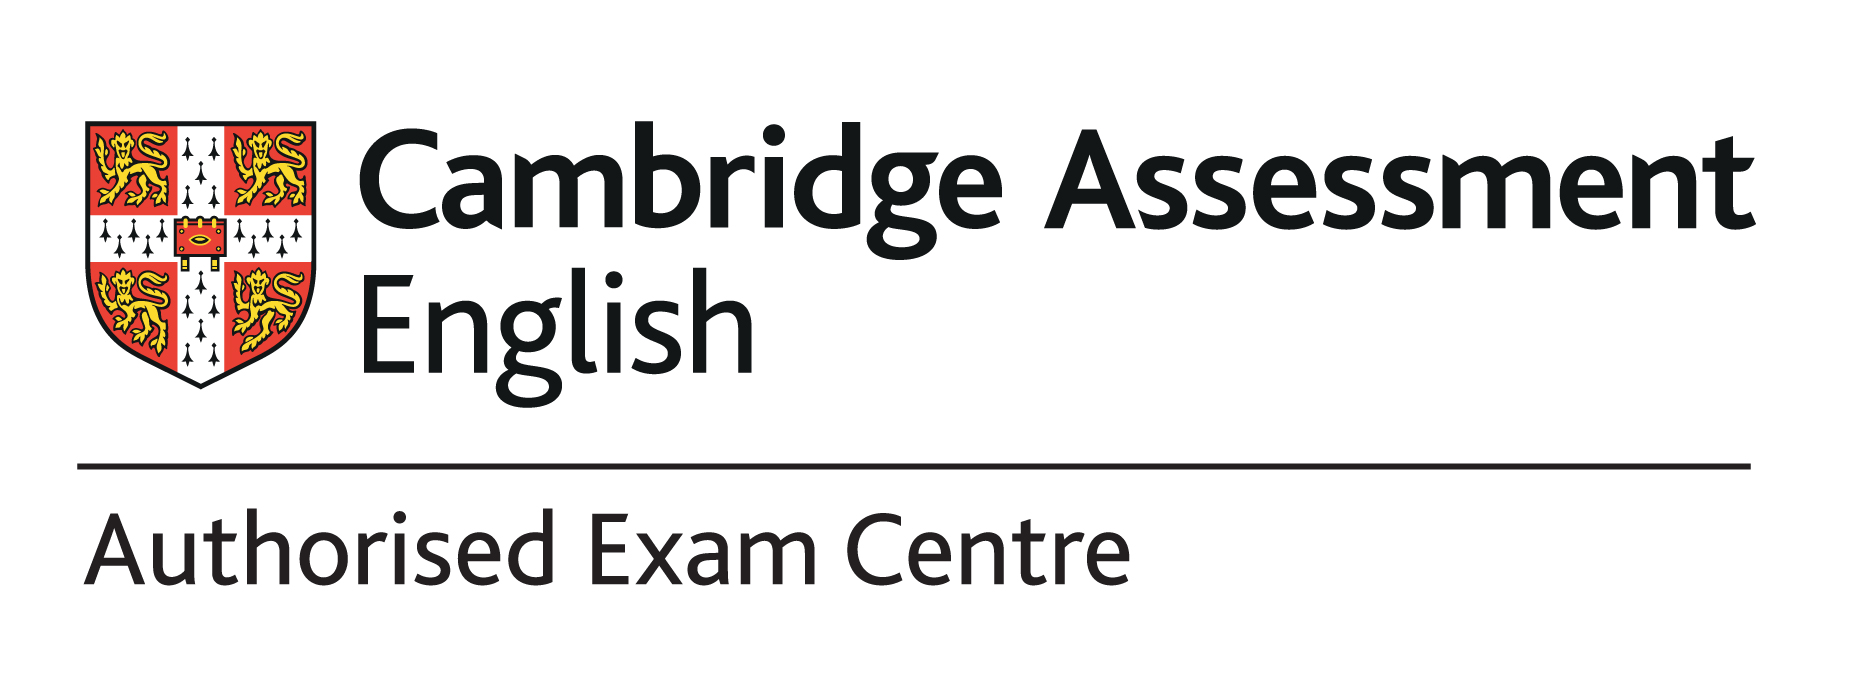 Authorised exam centre logo RGB.jpg